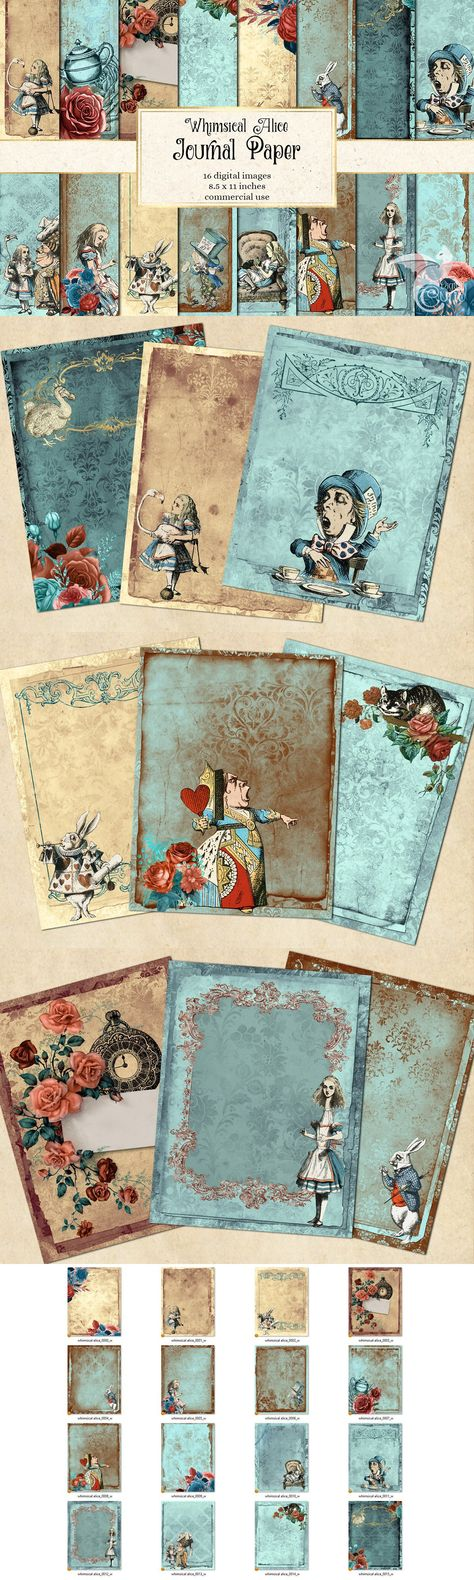 Whimsical Alice Journal Paper